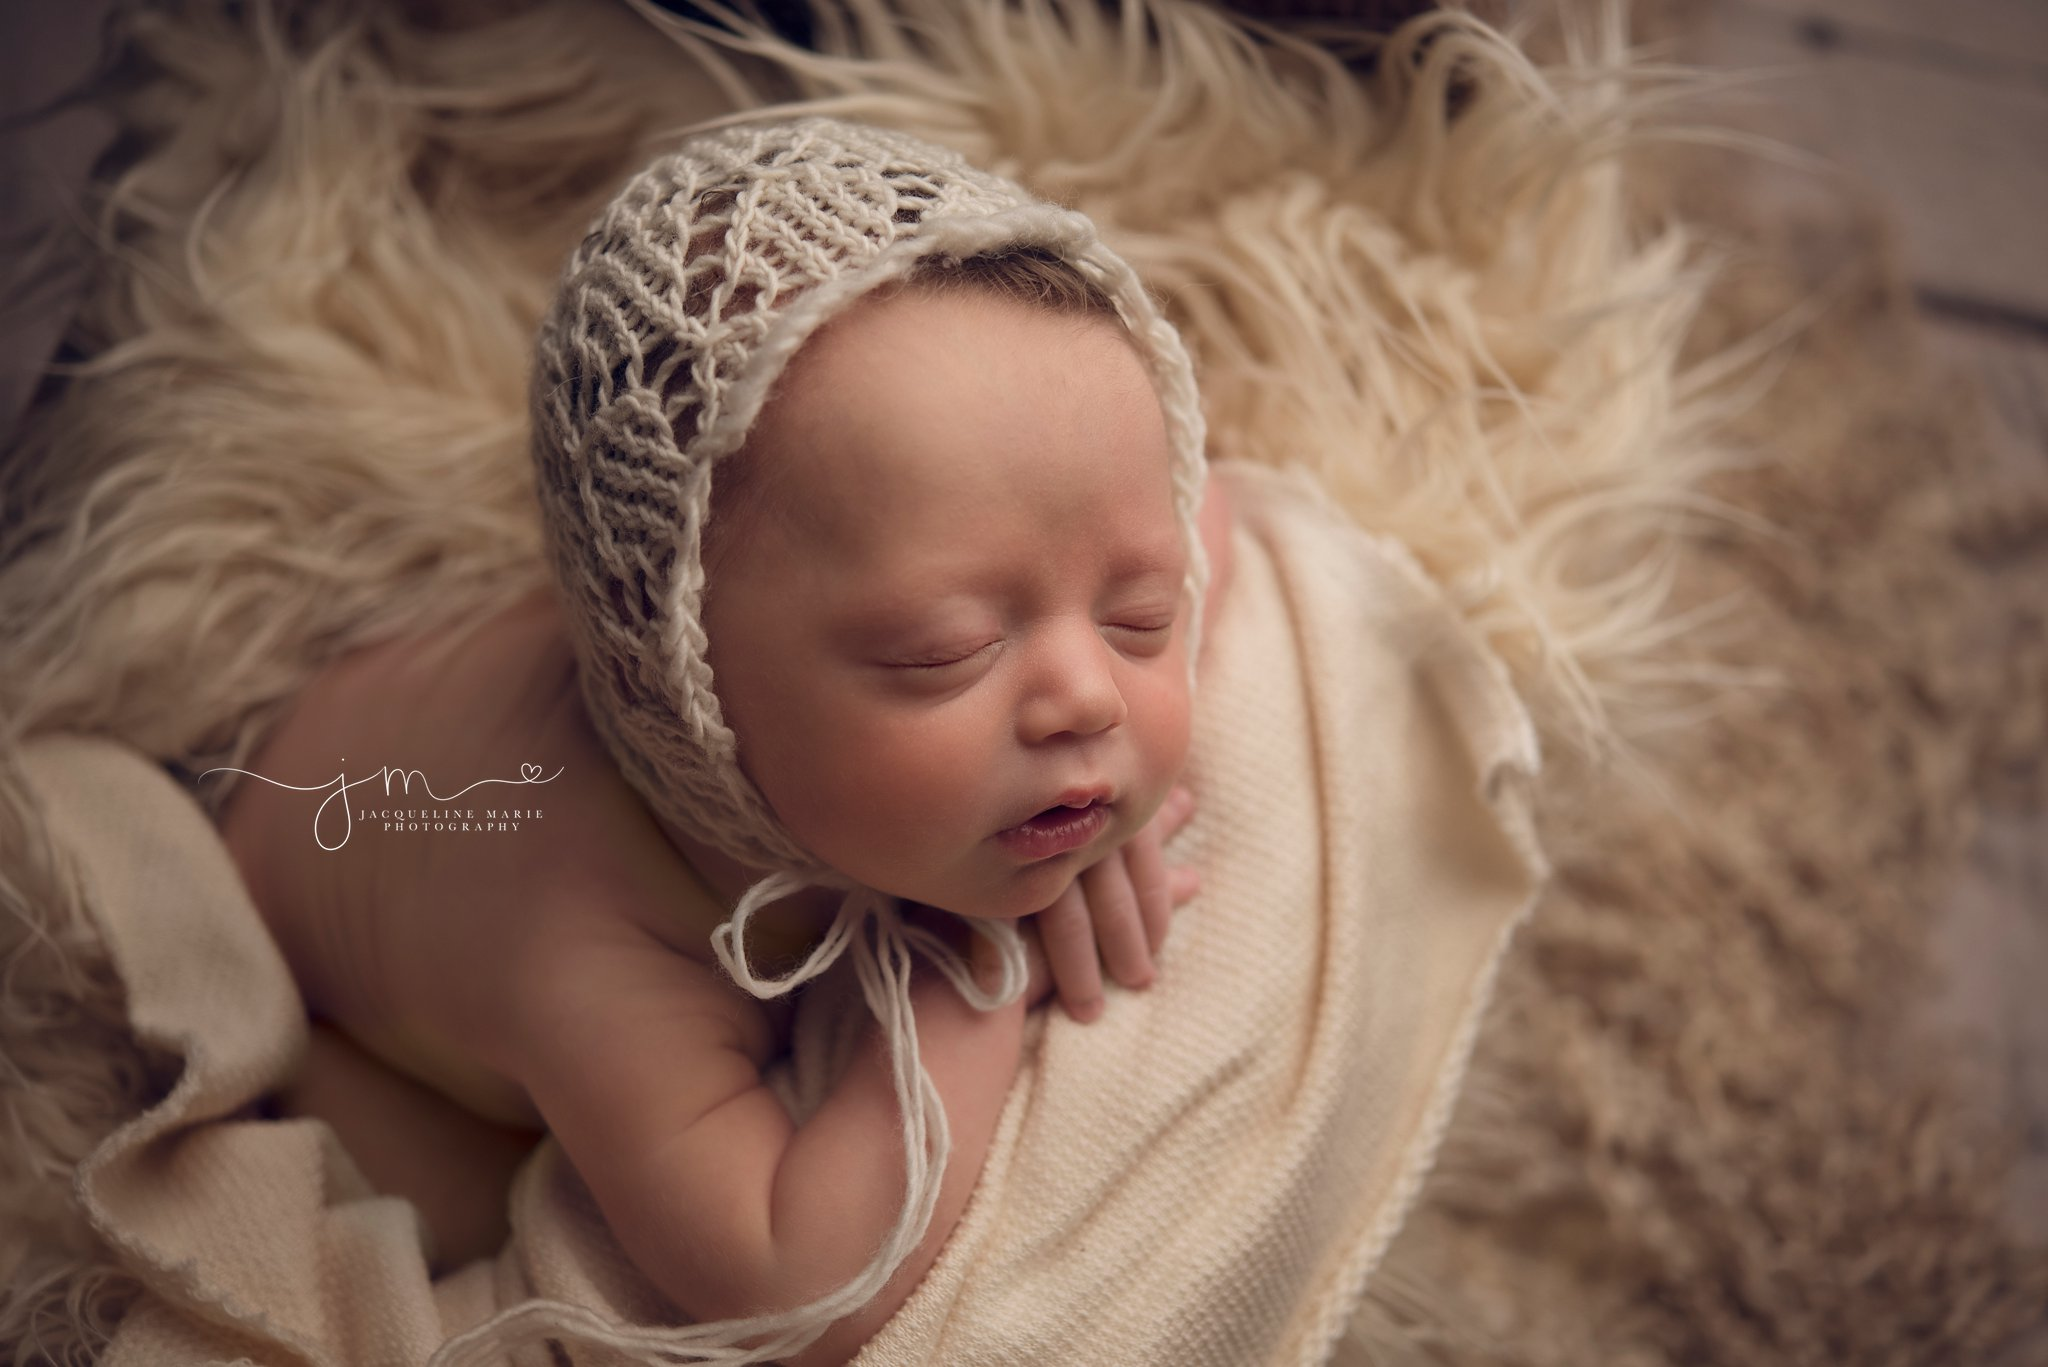 columbus ohio newborn photographer captures newborn baby girl in cream bonnet for newborn mentoring session with Photograpy by axis design in toccoa georgia